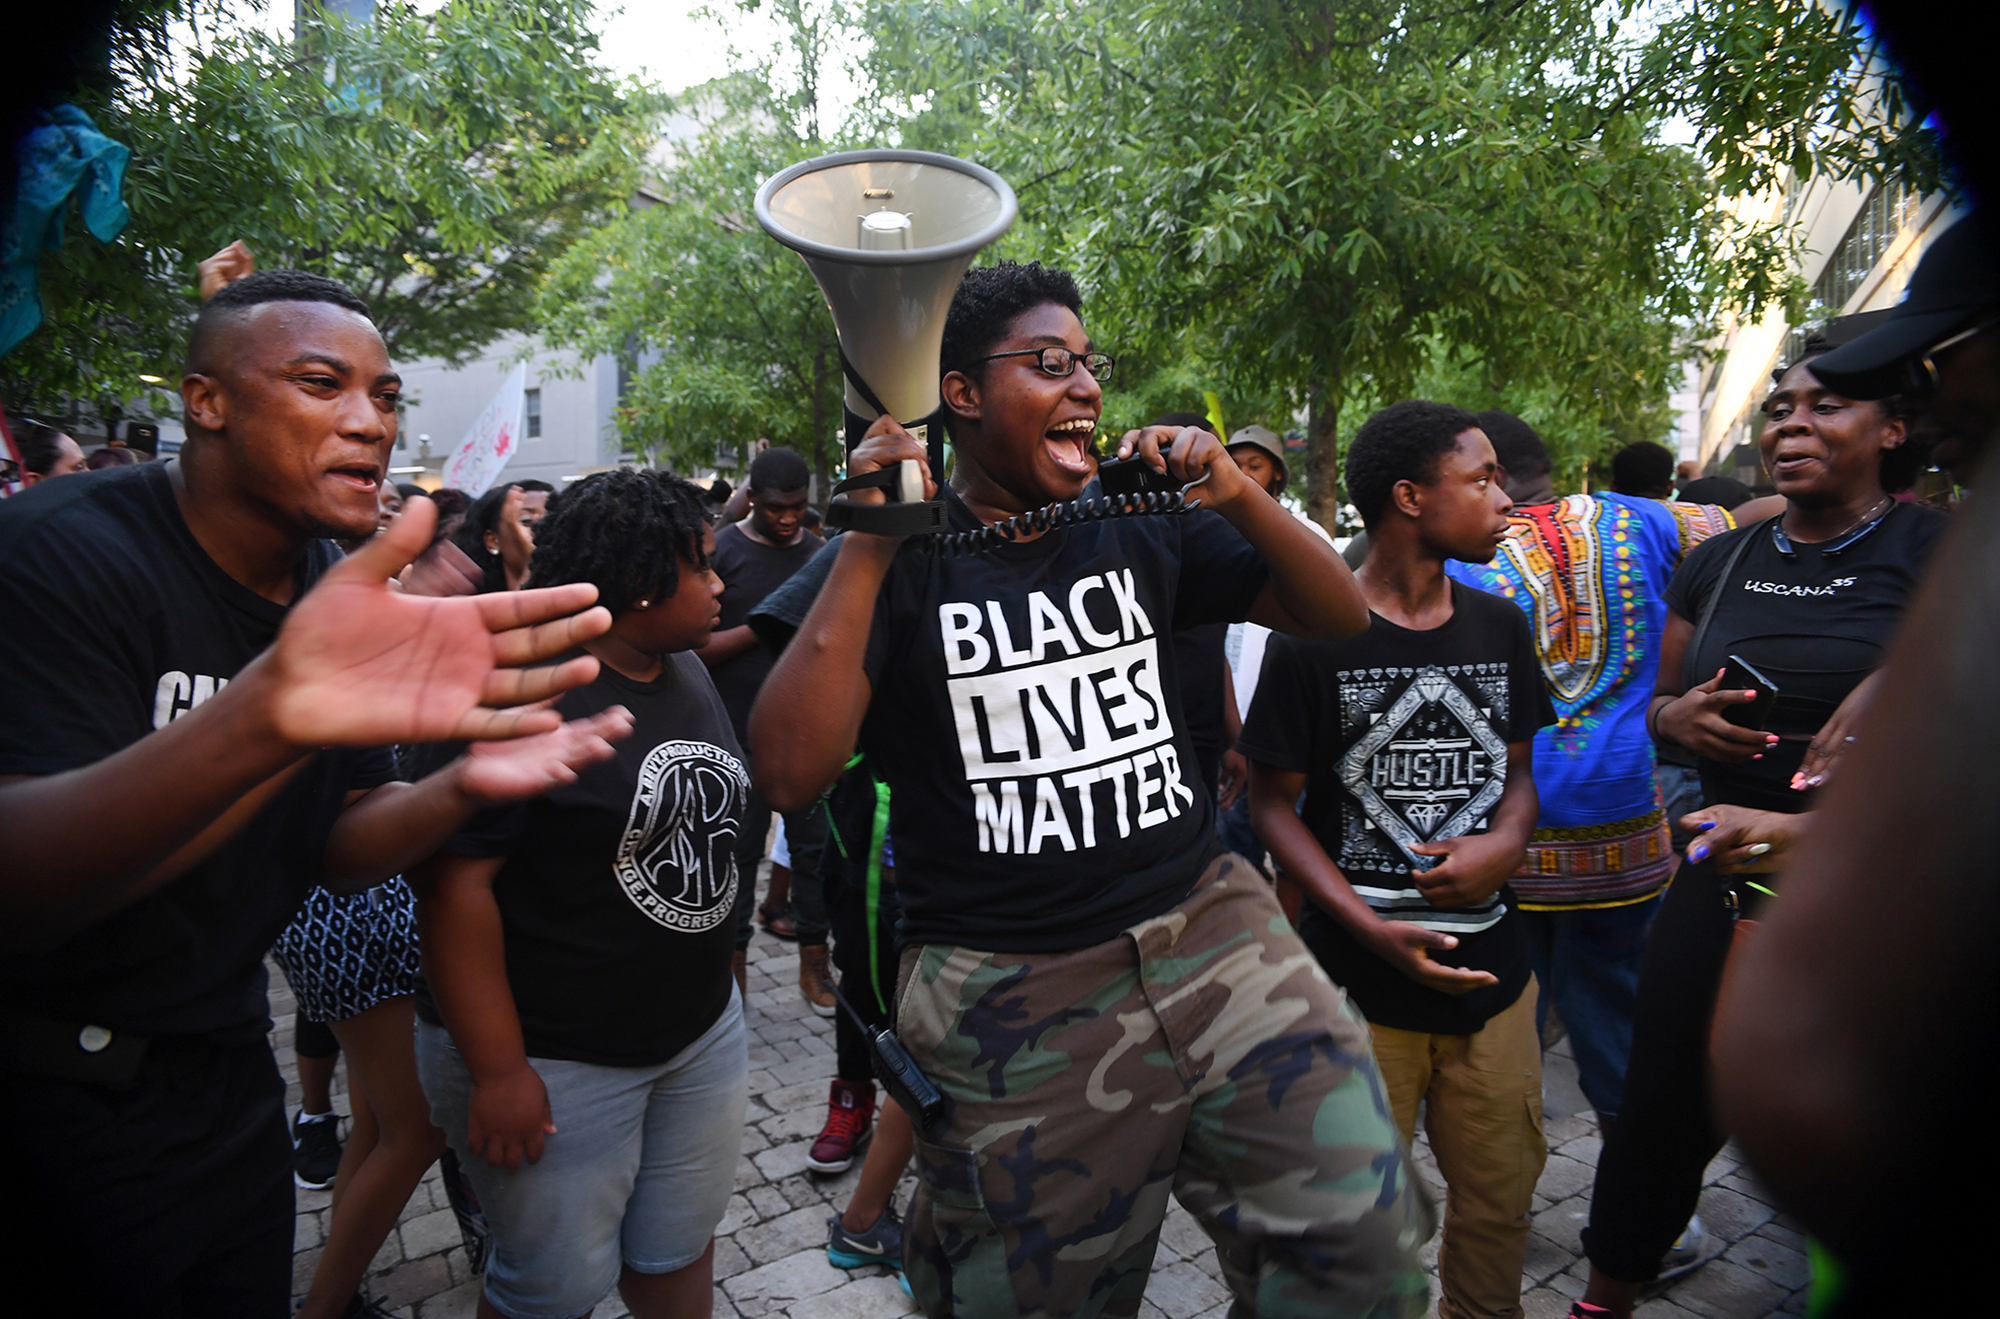 During the second night of a Black Lives Matter peace rally, a group of protestors cheer in NOMA Square in downtown Greenville before being asked to leave.